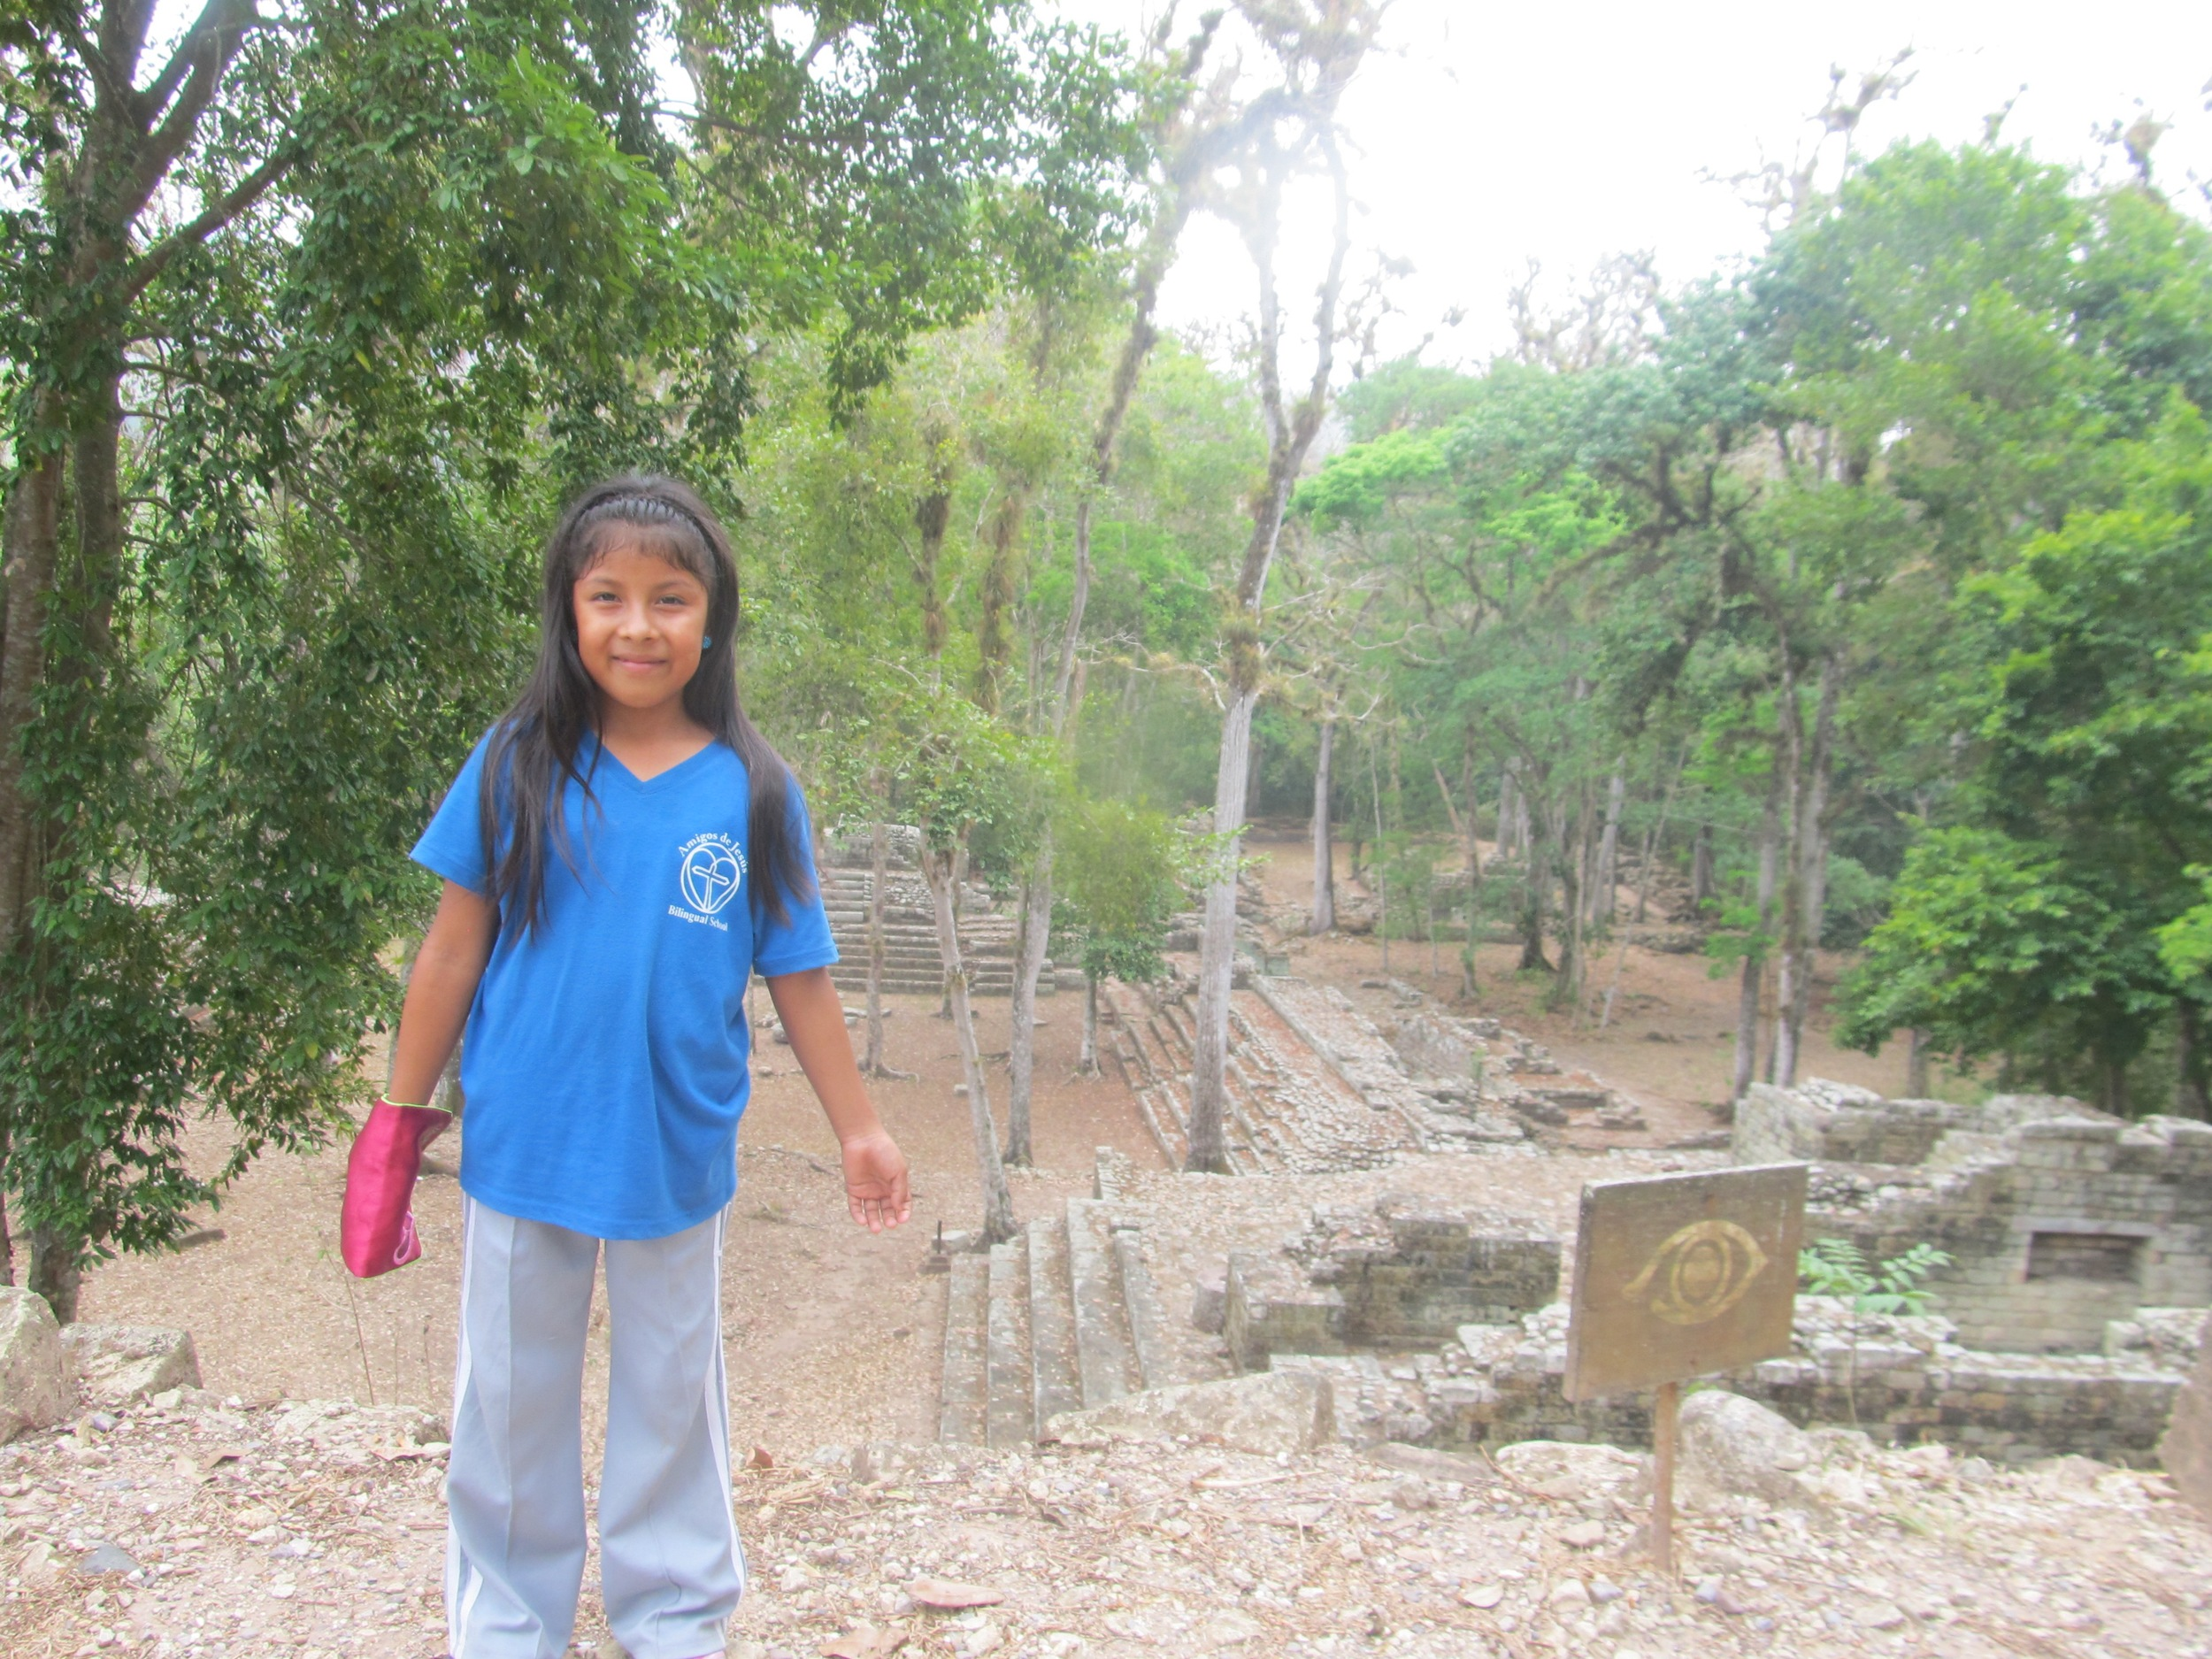 Visiting the Mayan ruins on the Amigos school field trip to Copan Ruinas, Honduras, in April.